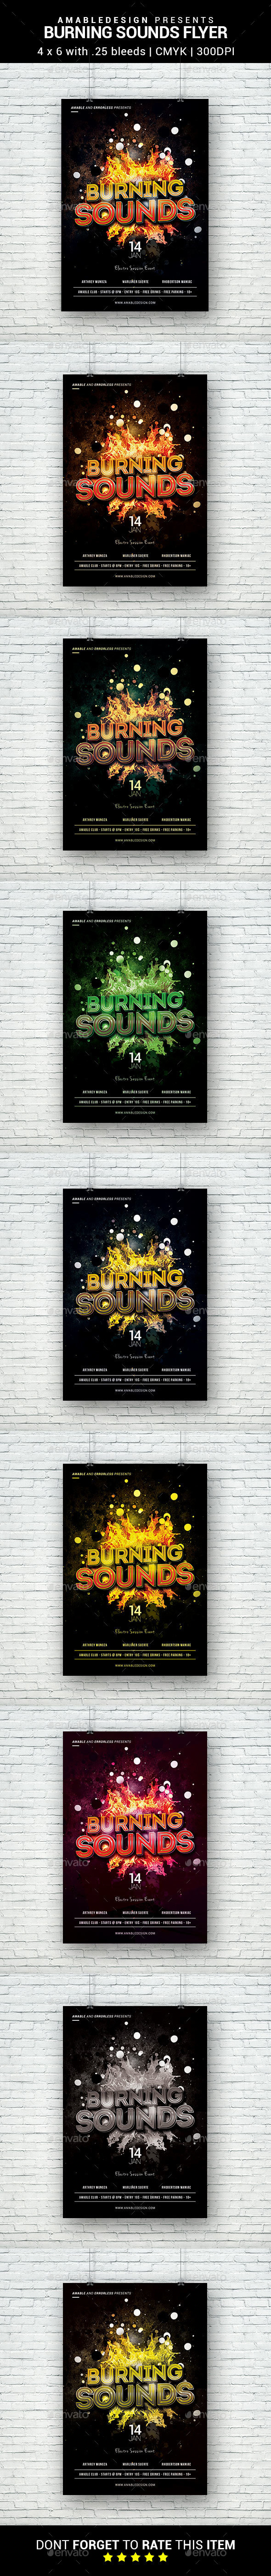 Burning Sounds Flyer - Clubs & Parties Events